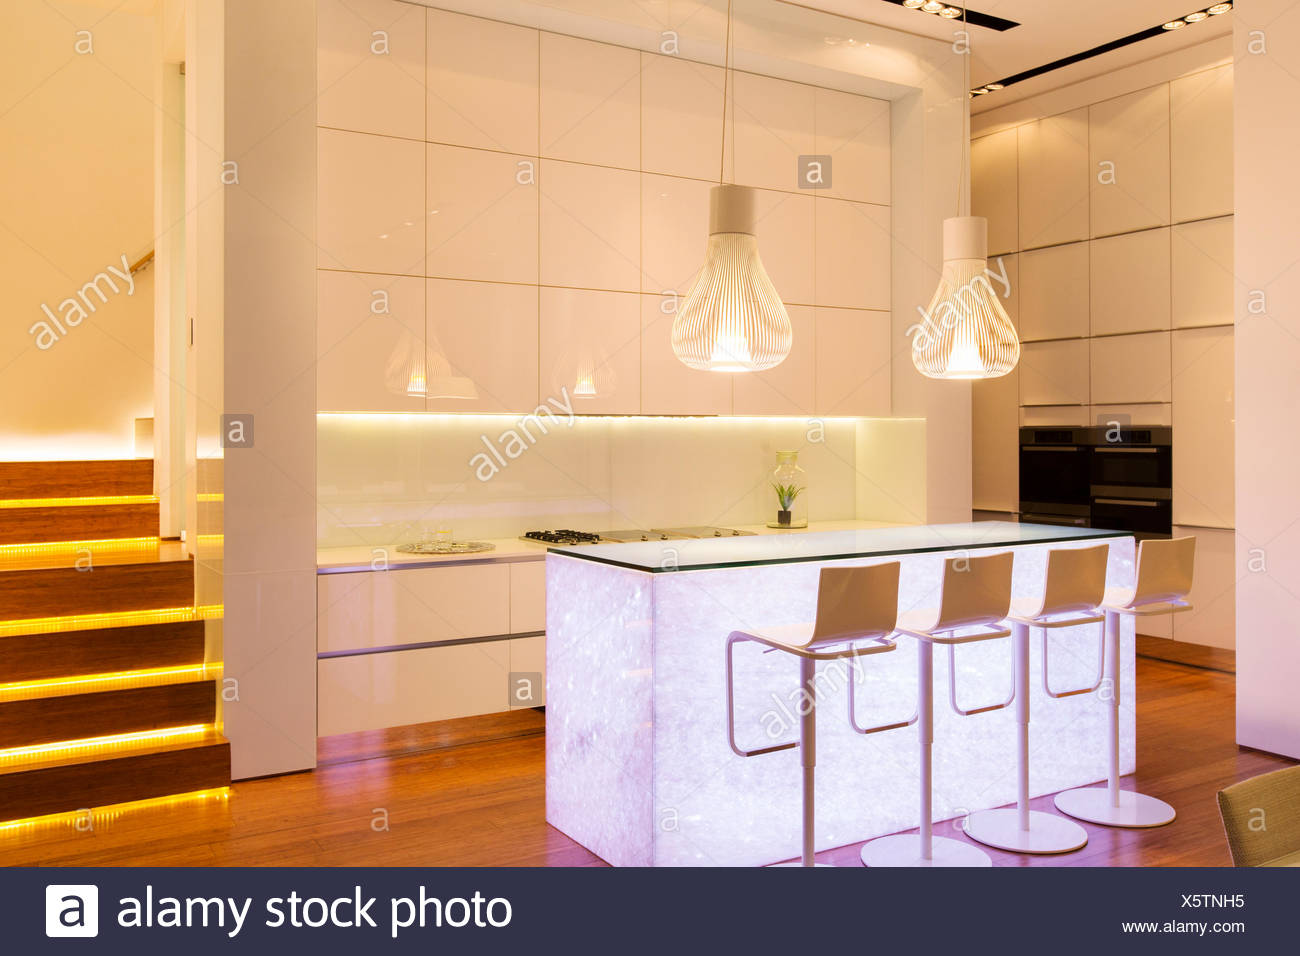 Bar stools and lighting in modern kitchen - Stock Image